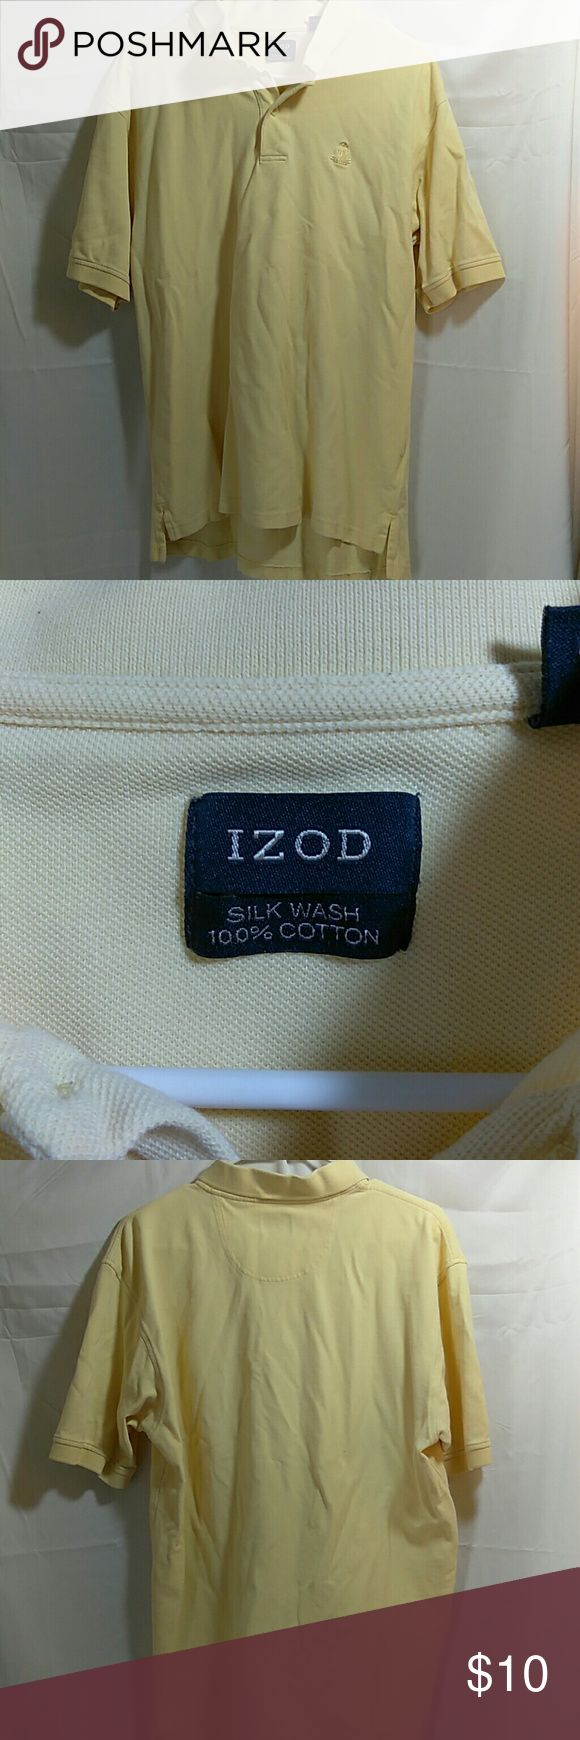 Izod polo shirt Izod size large yellow polo shirt used overall good condition. Izod Shirts Polos